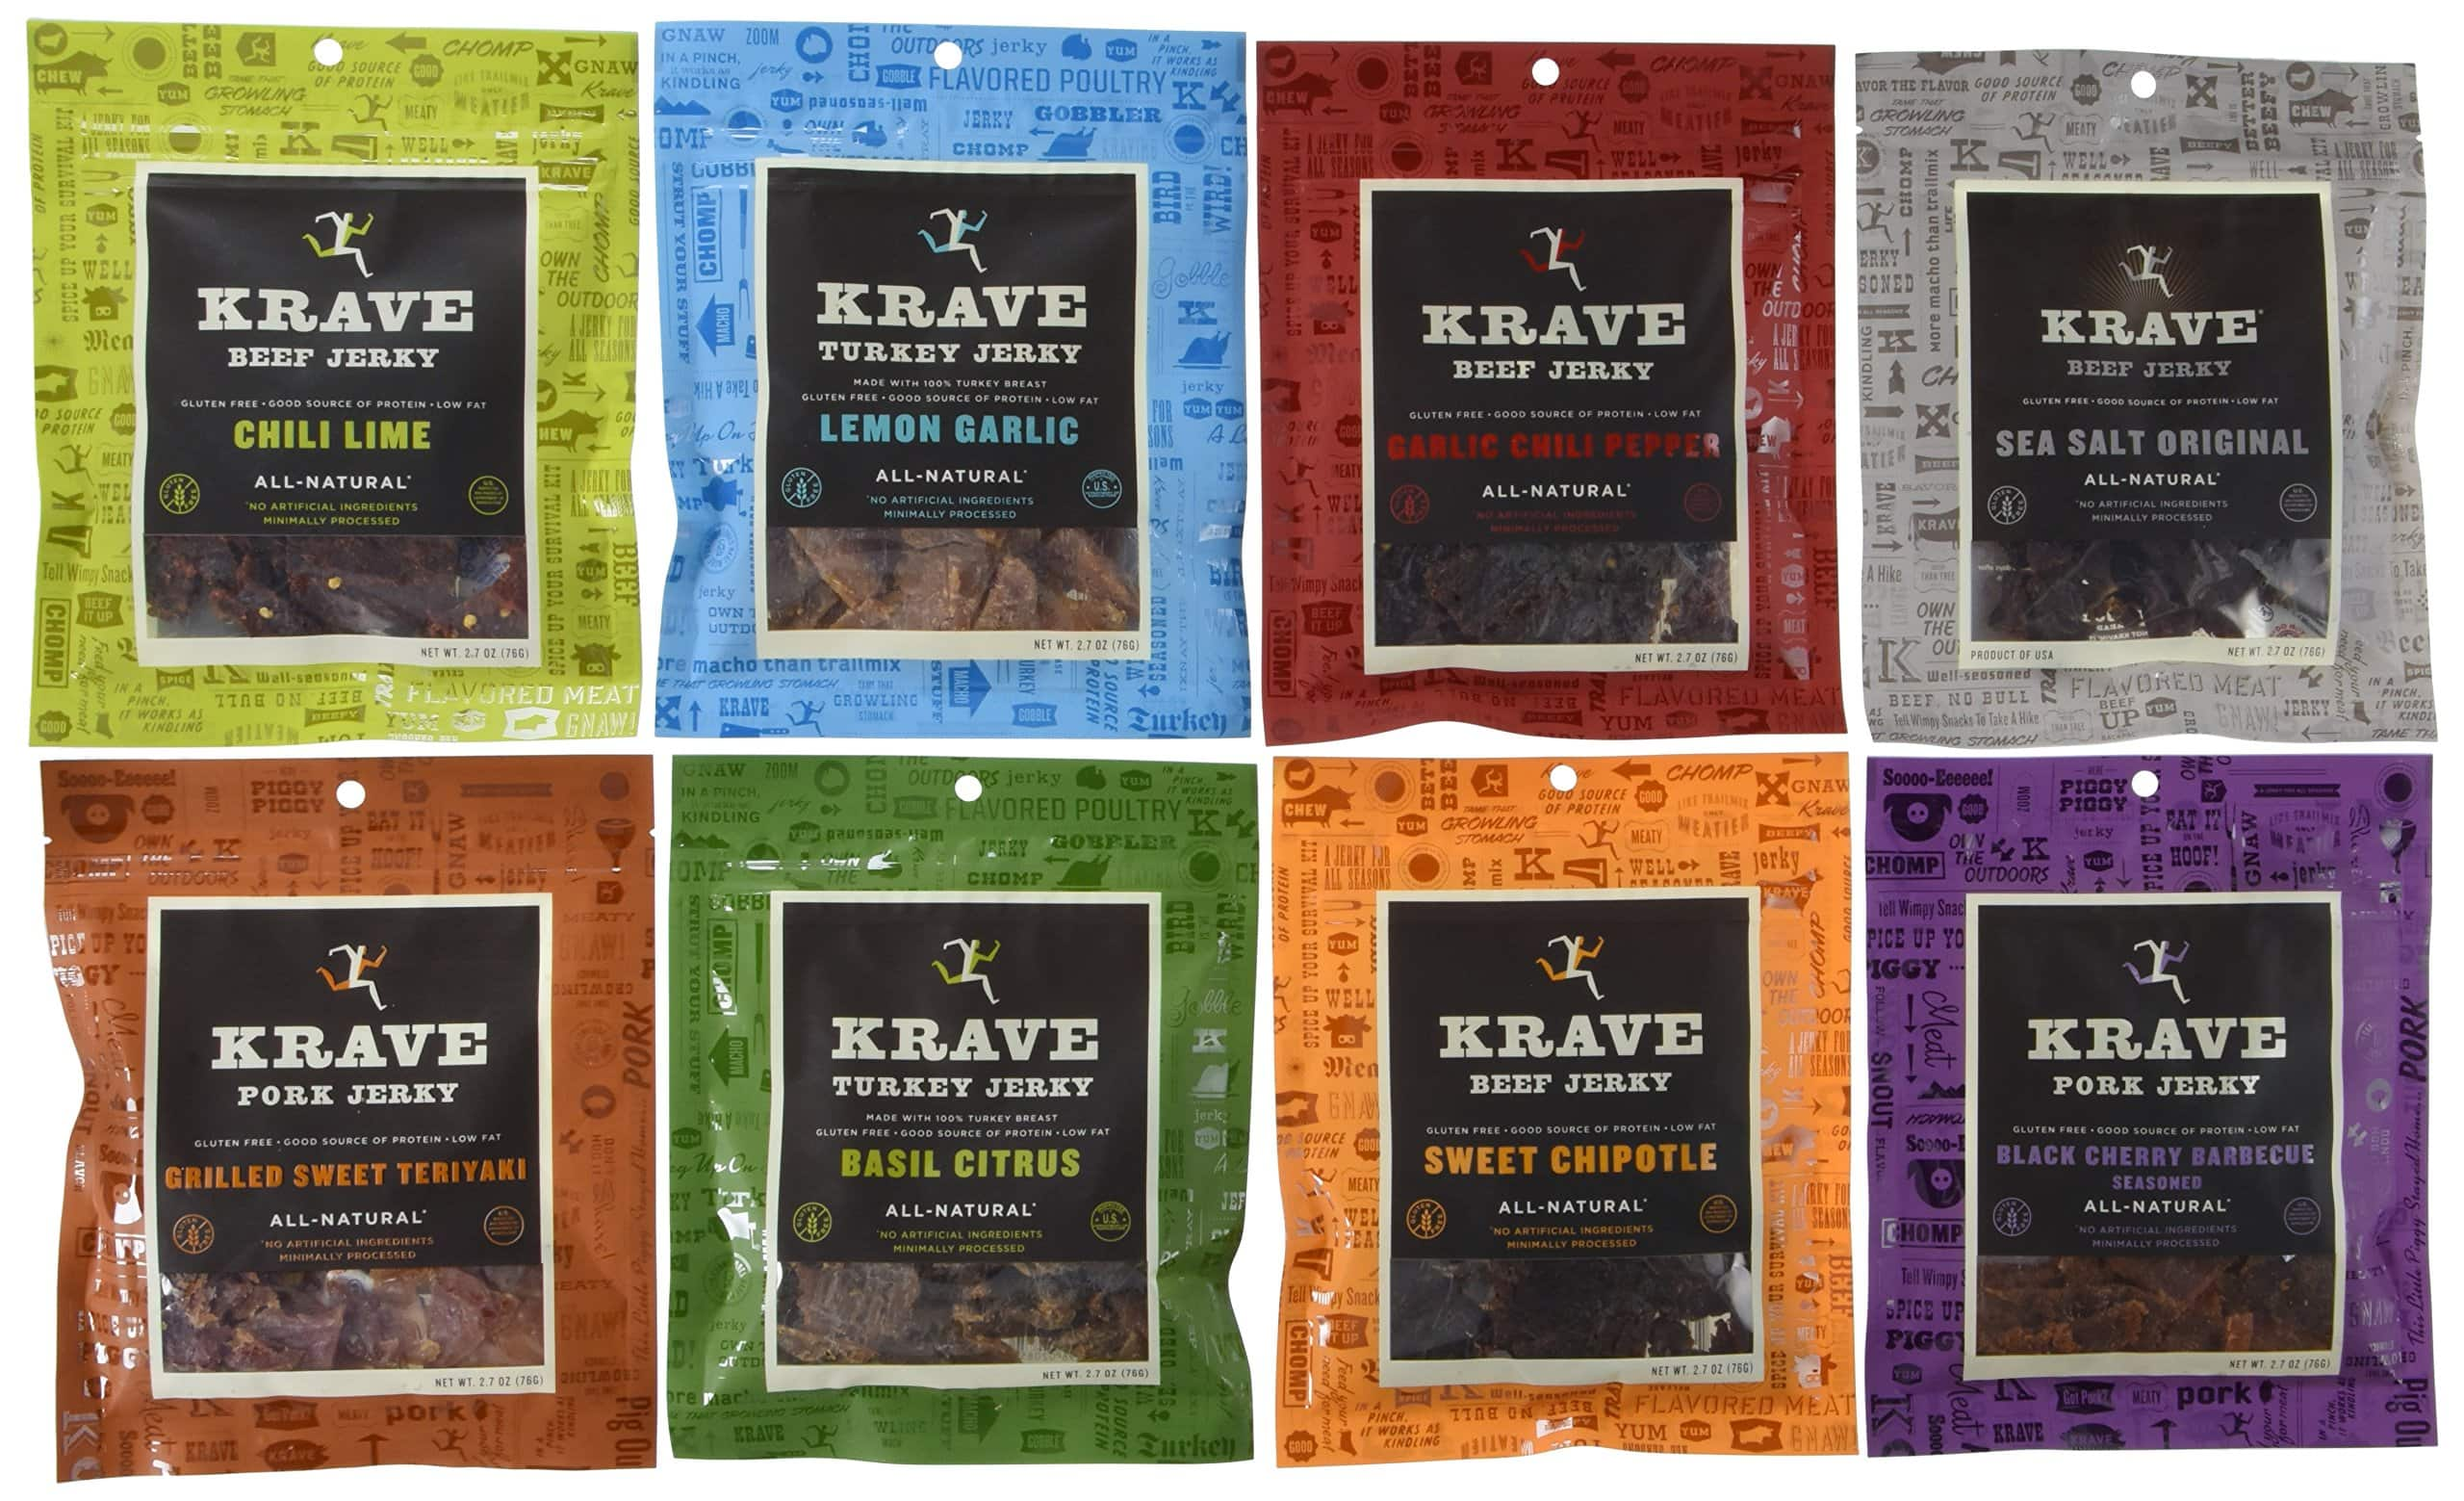 KRAVE Turkey Jerky, Lemon Garlic, 2.7 Oz. (Pack Of 8) - $17.99  or Sweet Chipotle $21.99 8/pk + Free Ship